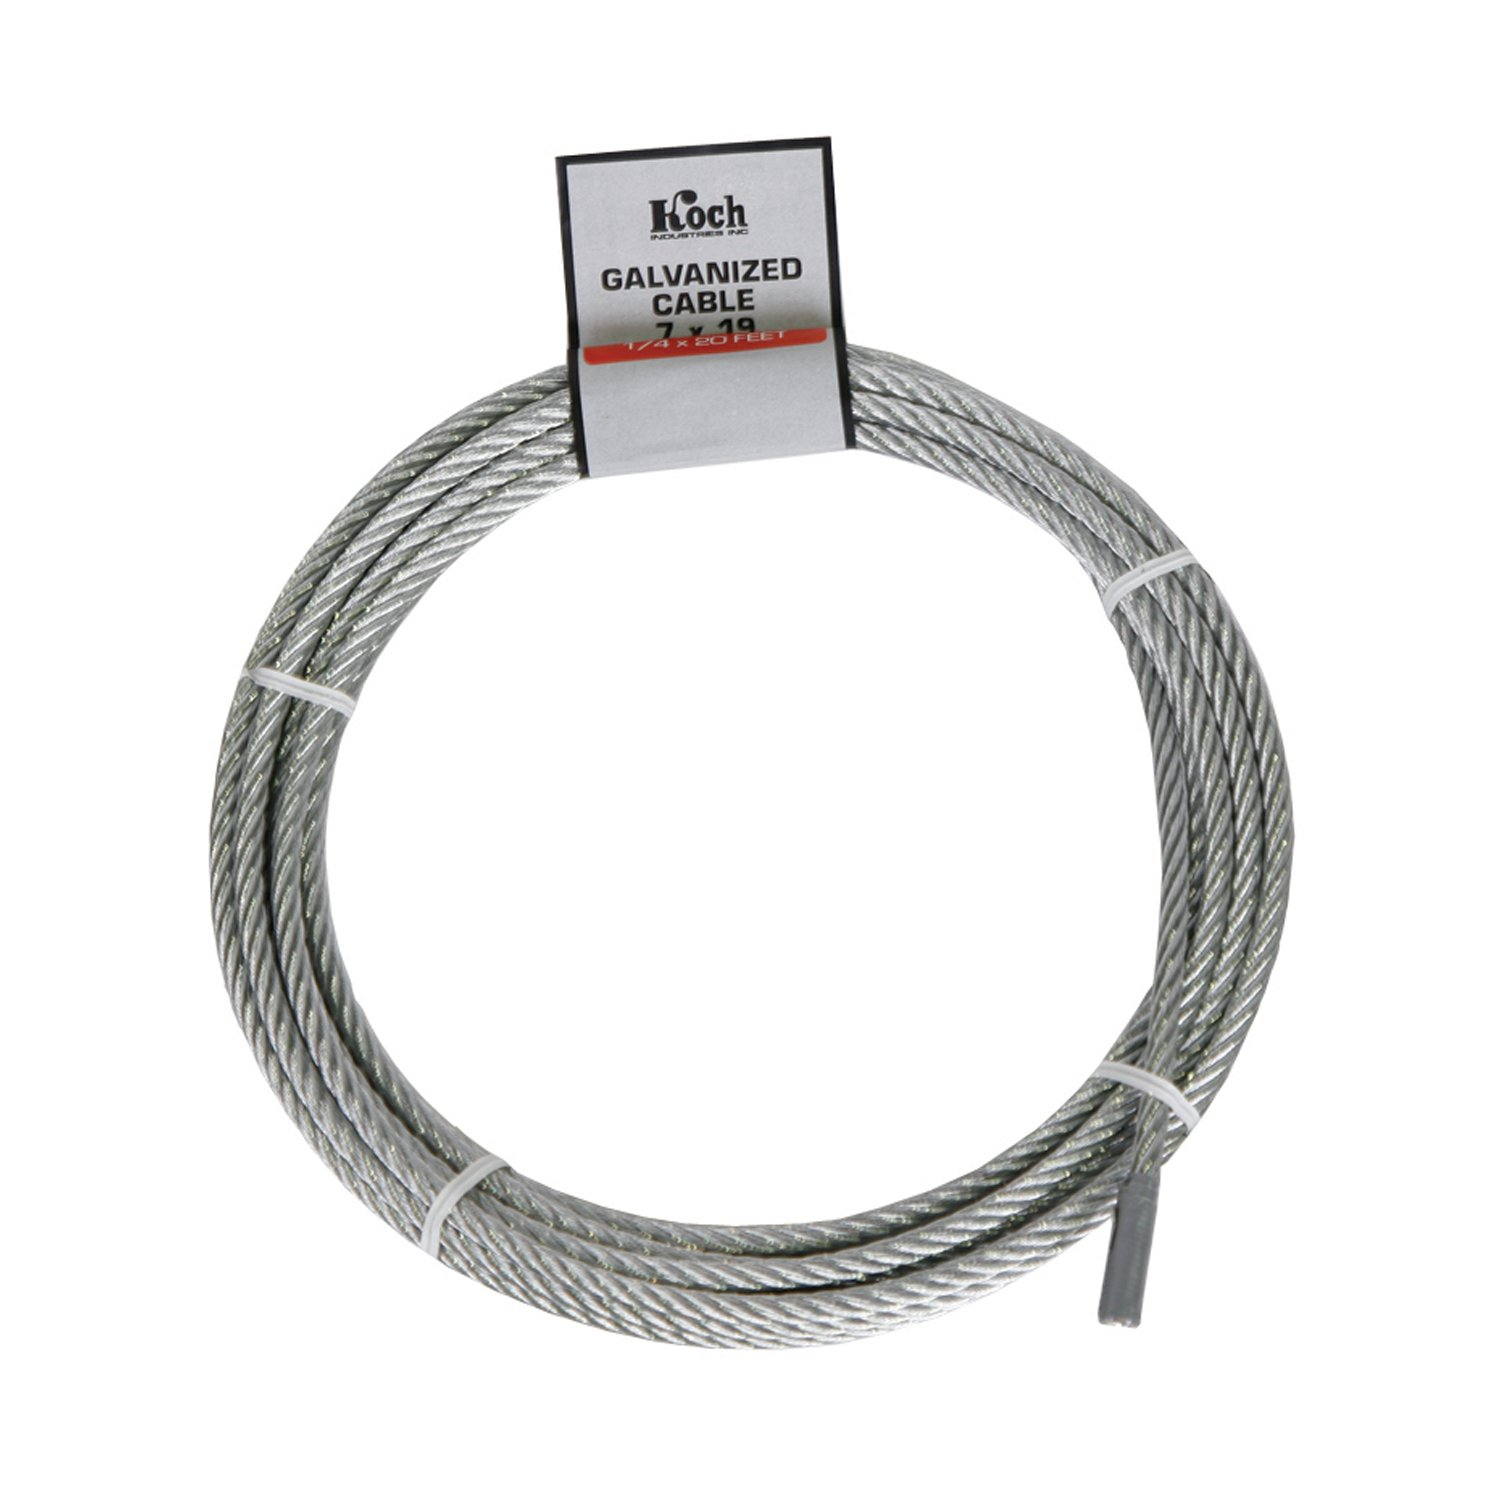 Koch A41212 7 x 19 Pre-cut Galvanized Wire Rope Cable 1/4-Inch by 20 ...